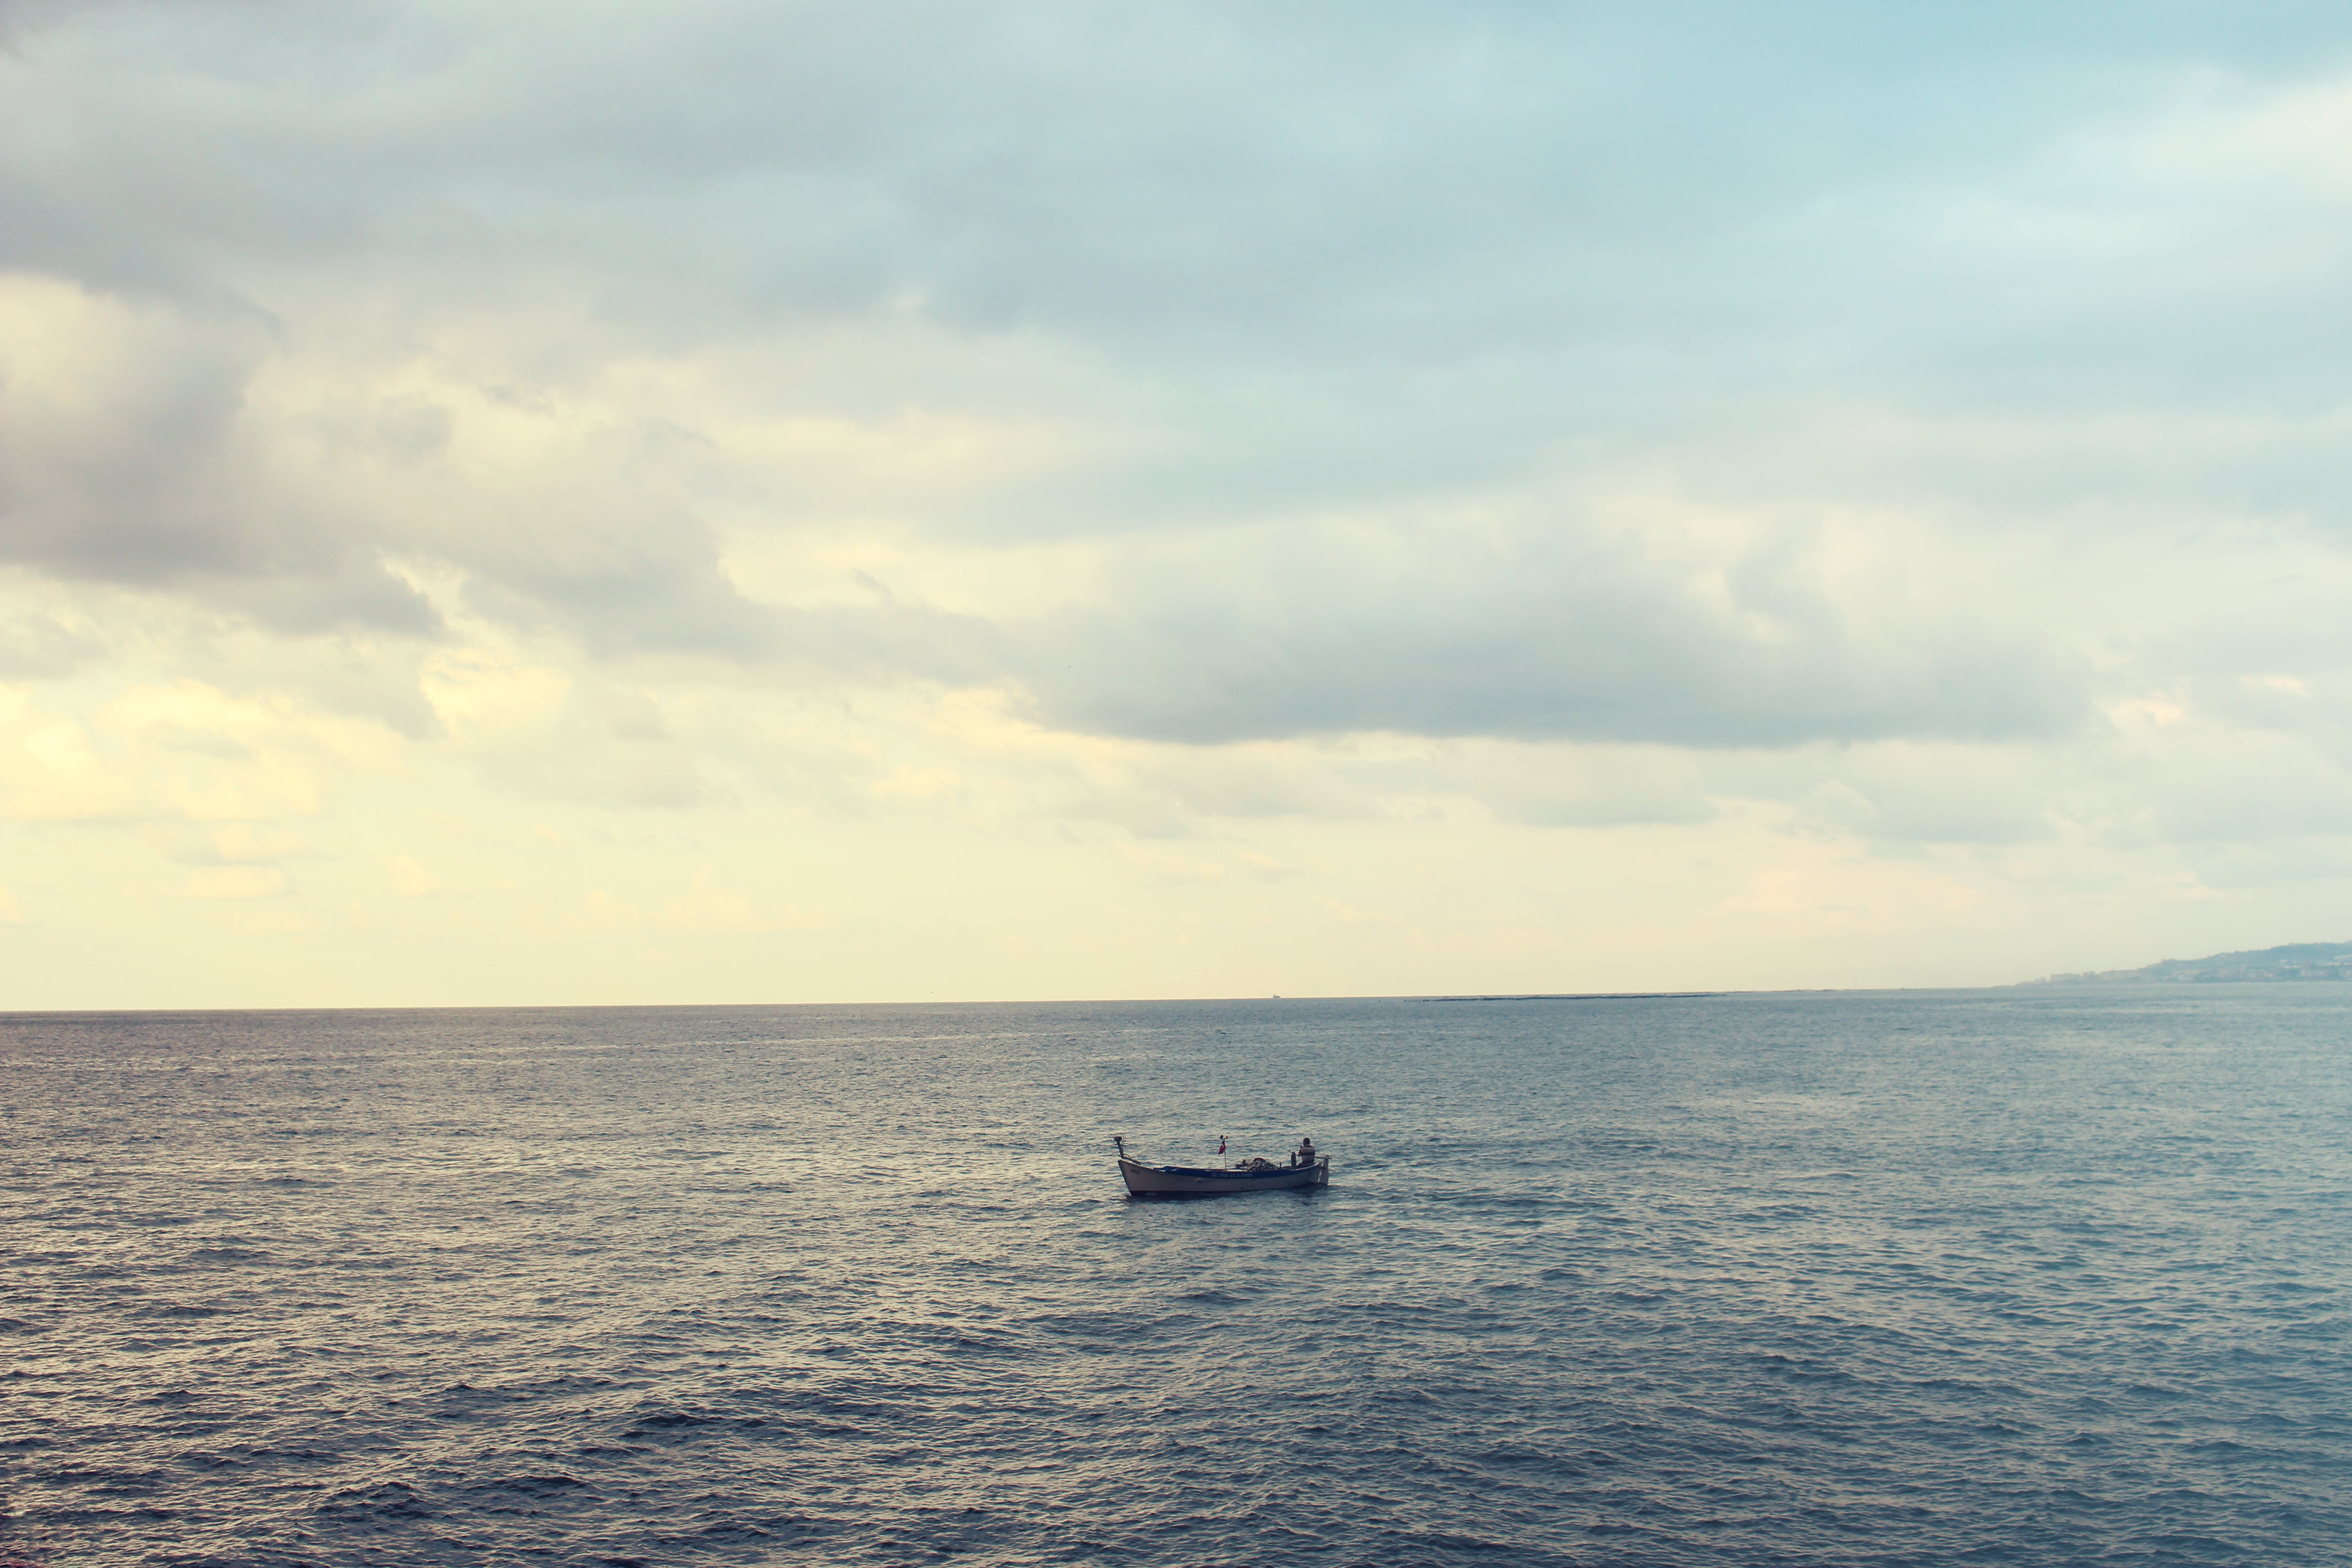 Wooden Boat on Water on Calm Body of Water during Cloudy Daytime Sky